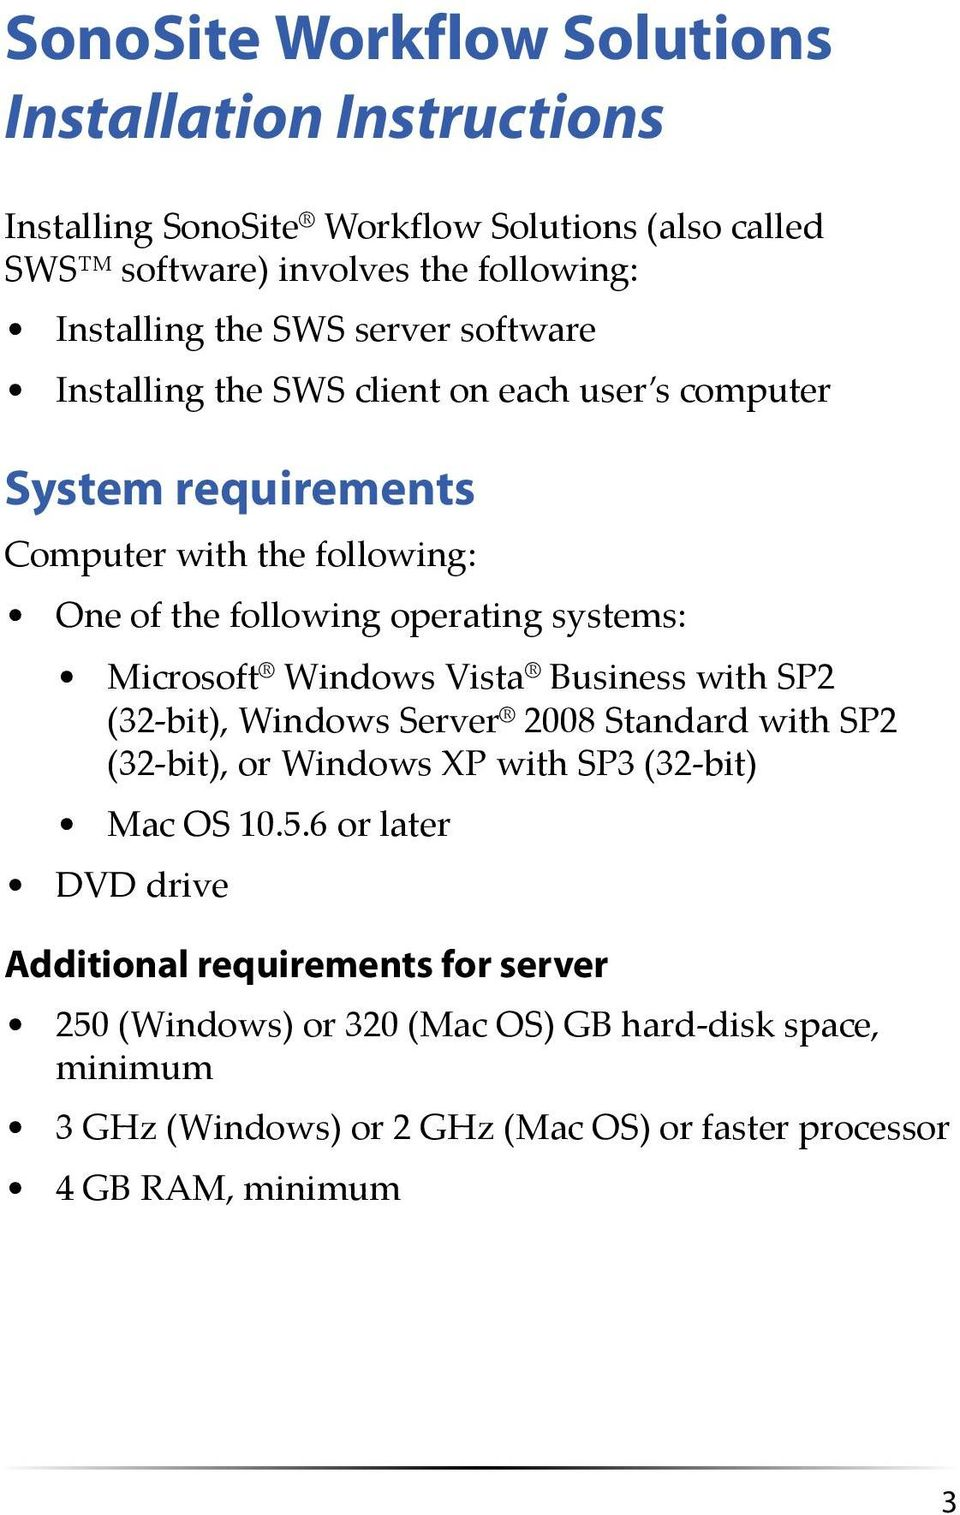 Microsoft Windows Vista Business with SP2 (32 bit), Windows Server 2008 Standard with SP2 (32 bit), or Windows XP with SP3 (32 bit) Mac OS 10.5.